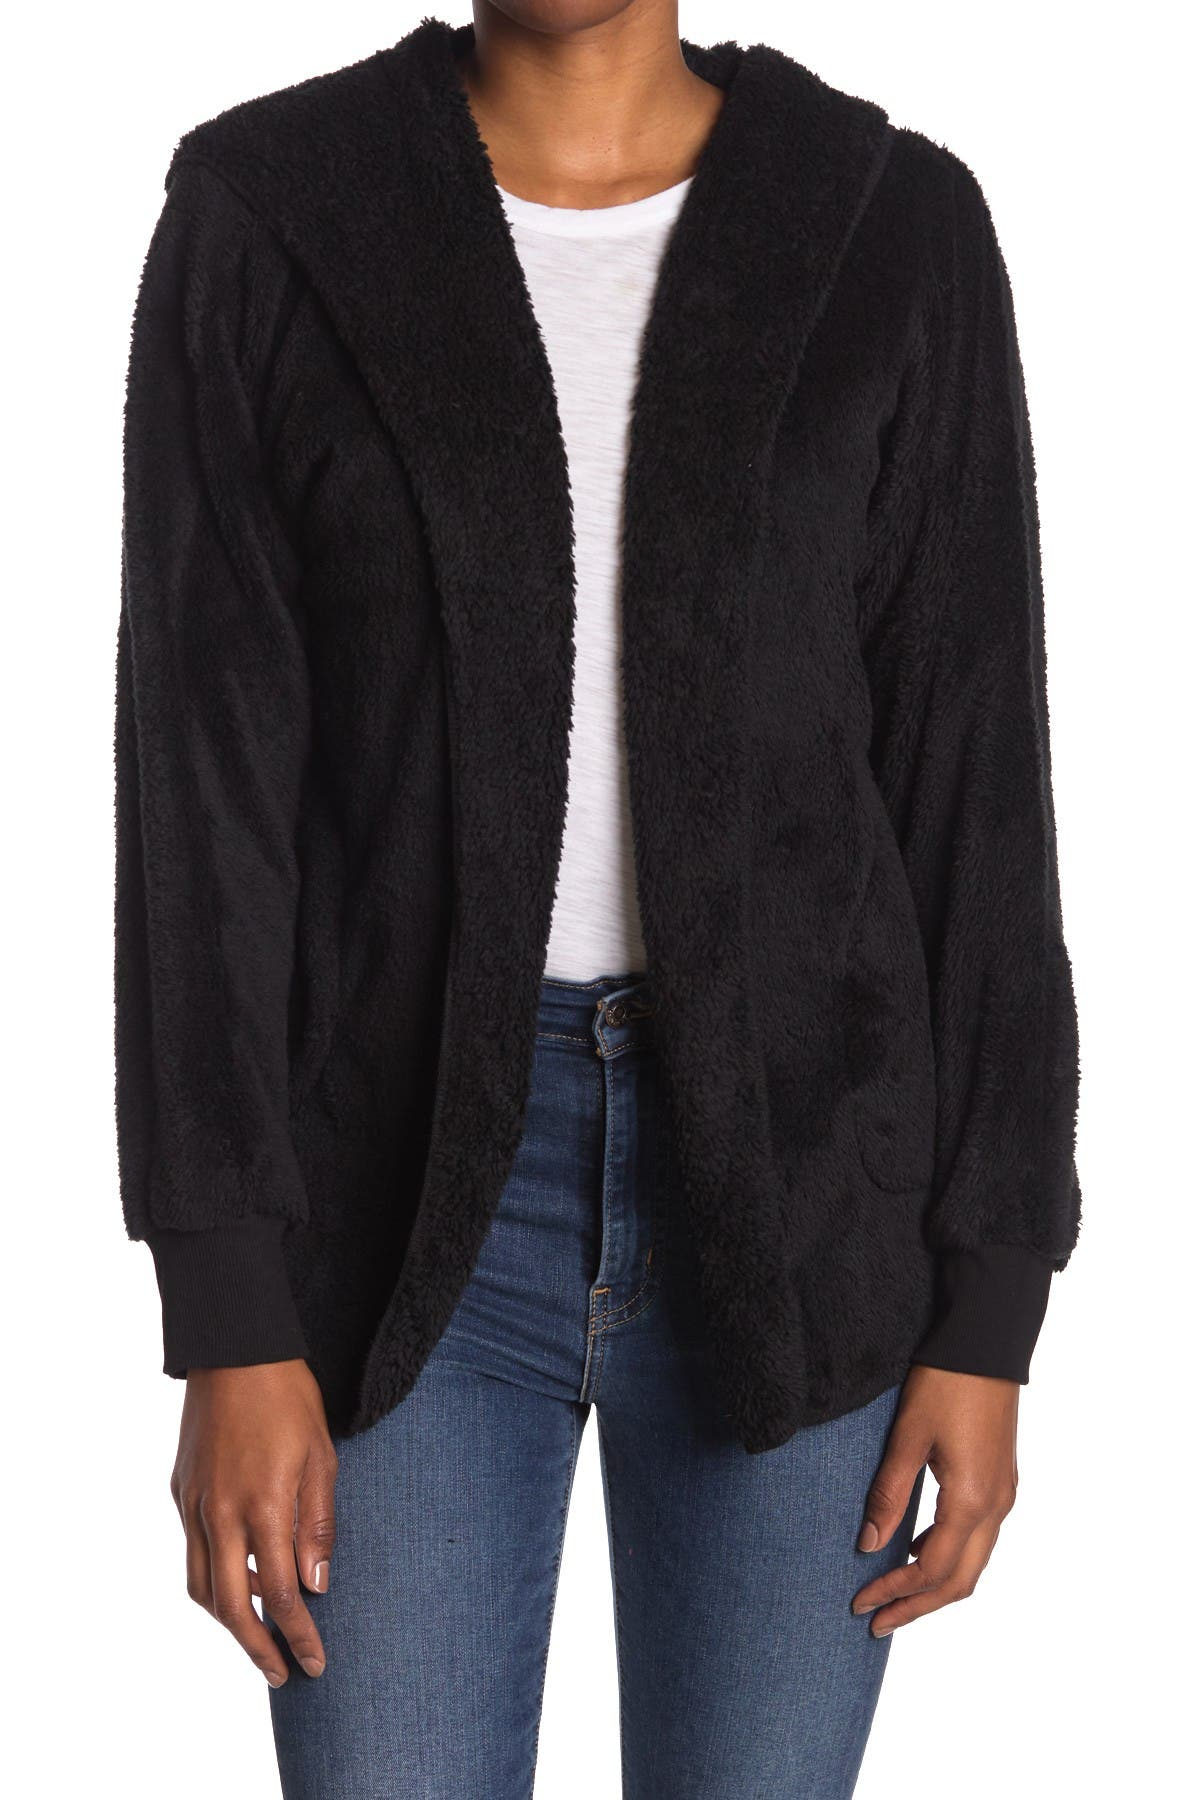 Image of Forgotten Grace Faux Shearling Open Front Cardigan